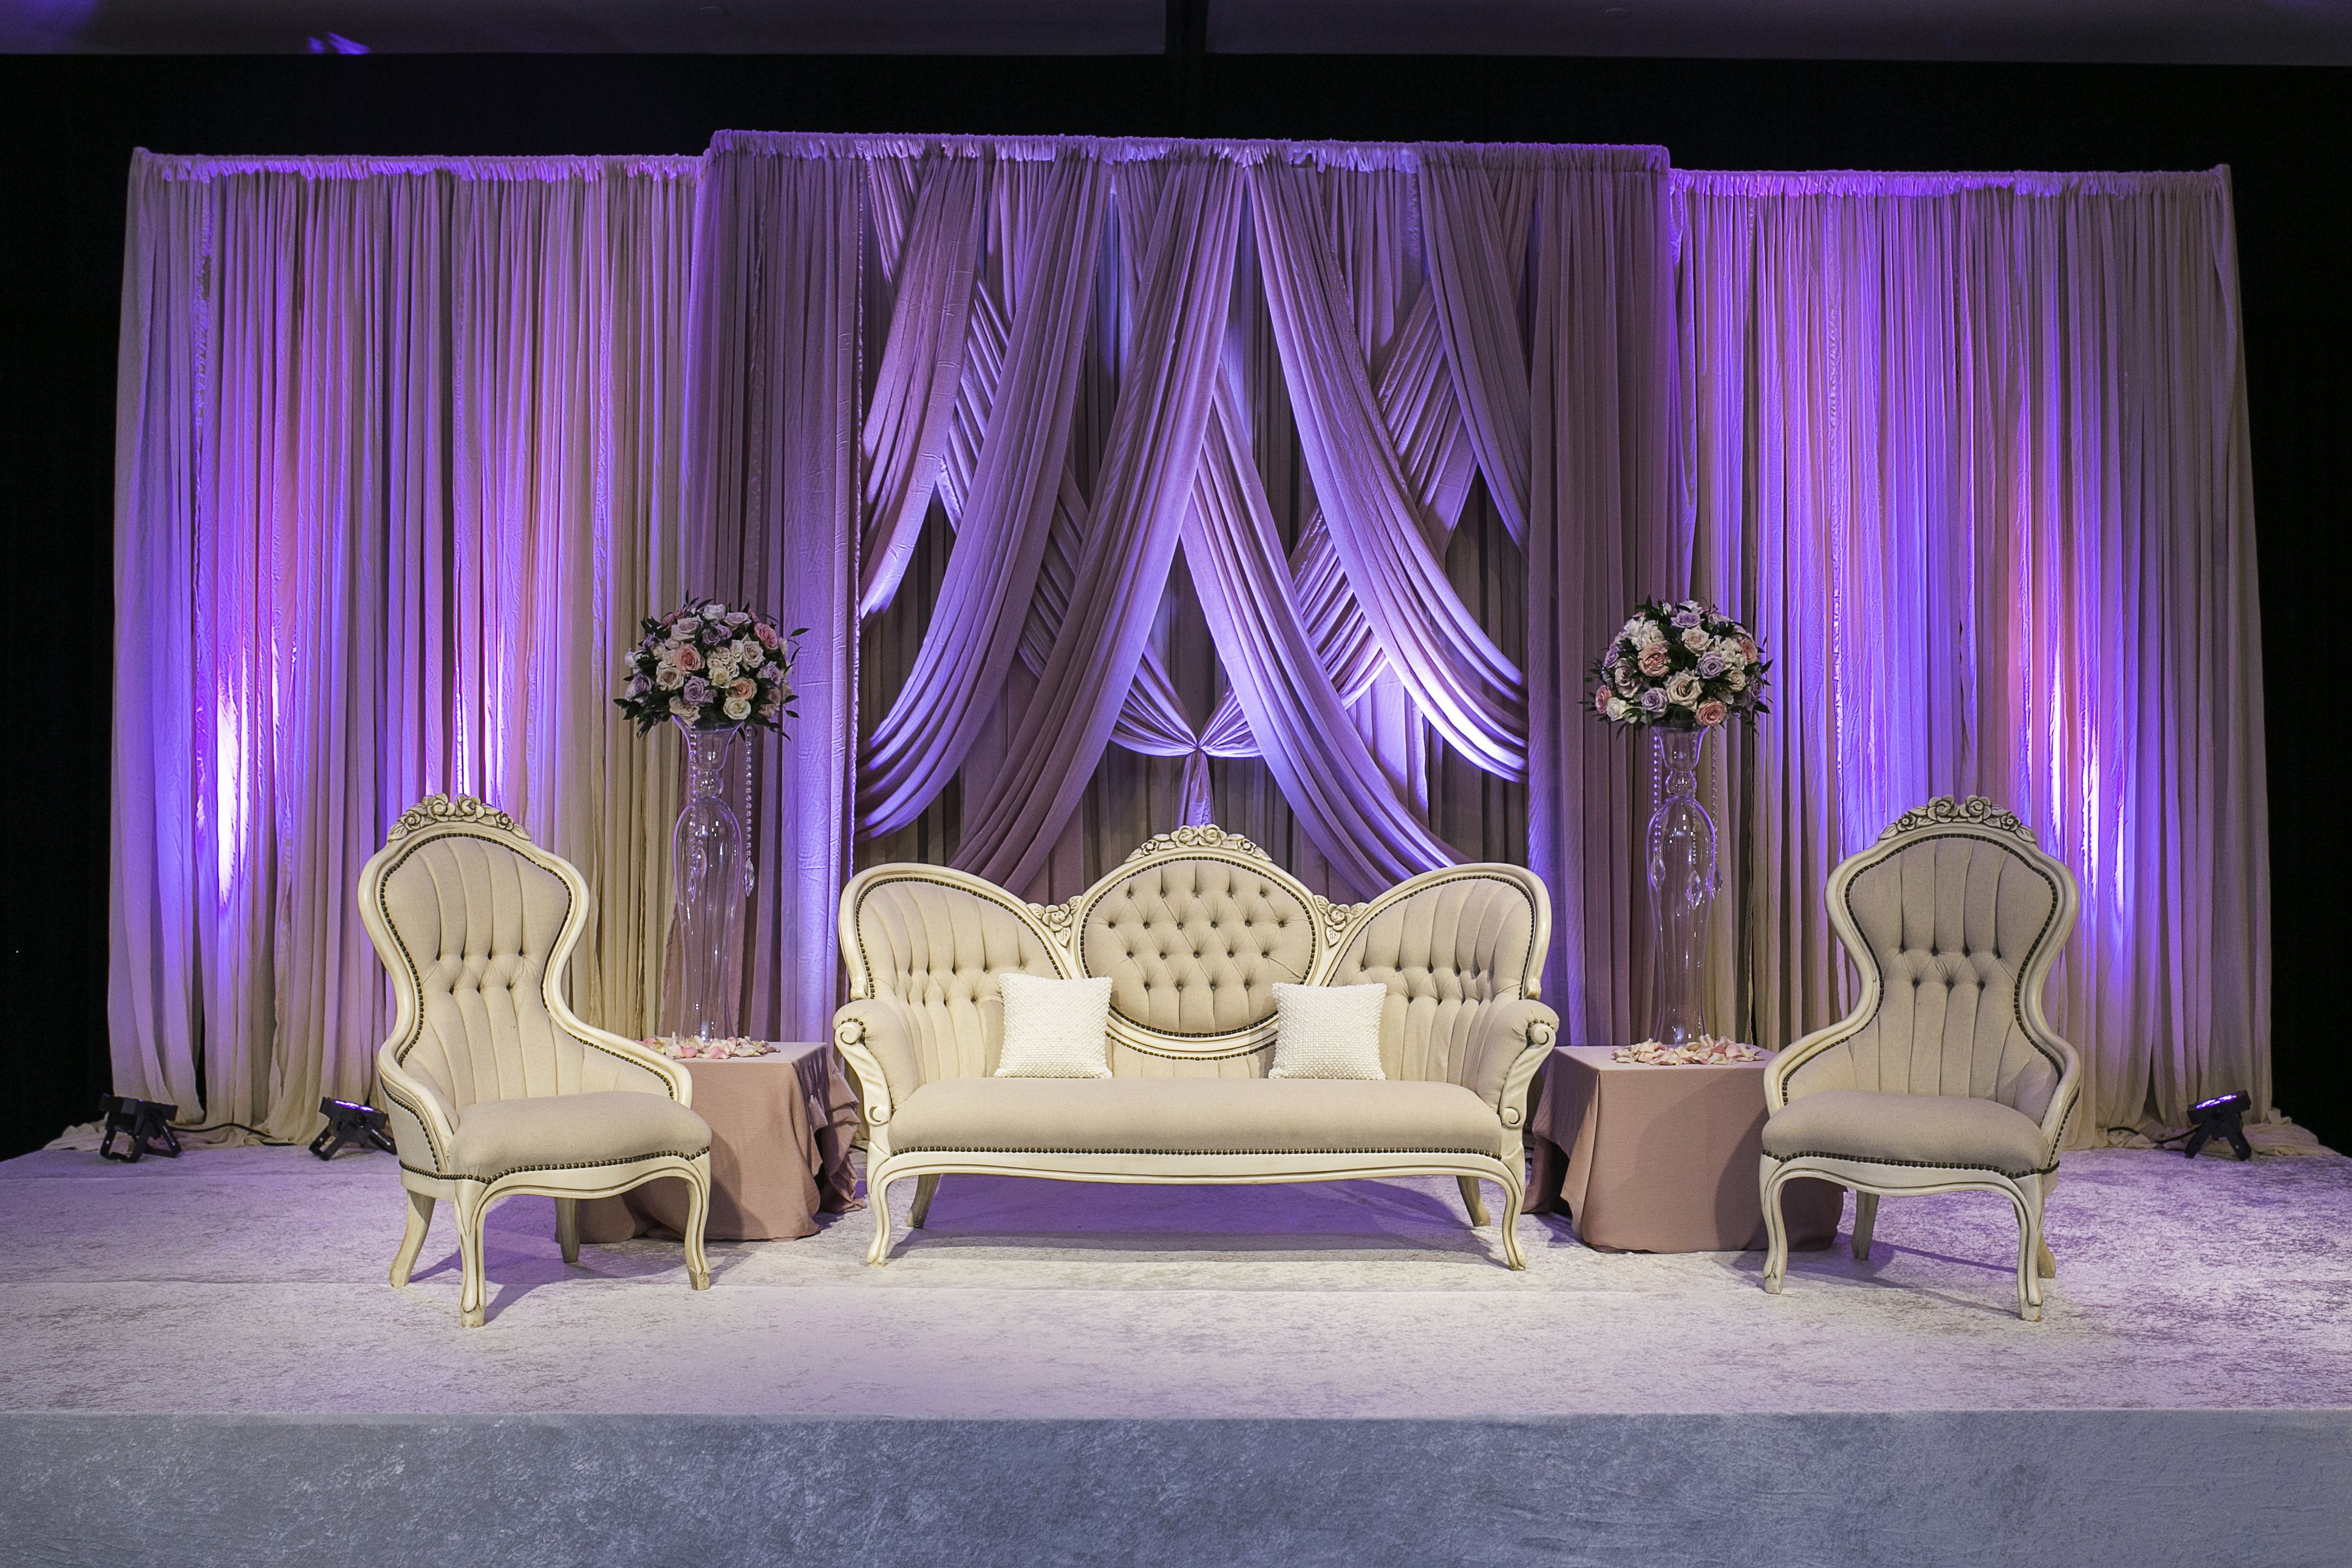 Backdrop Draping Event Backdrop Decorations Wall